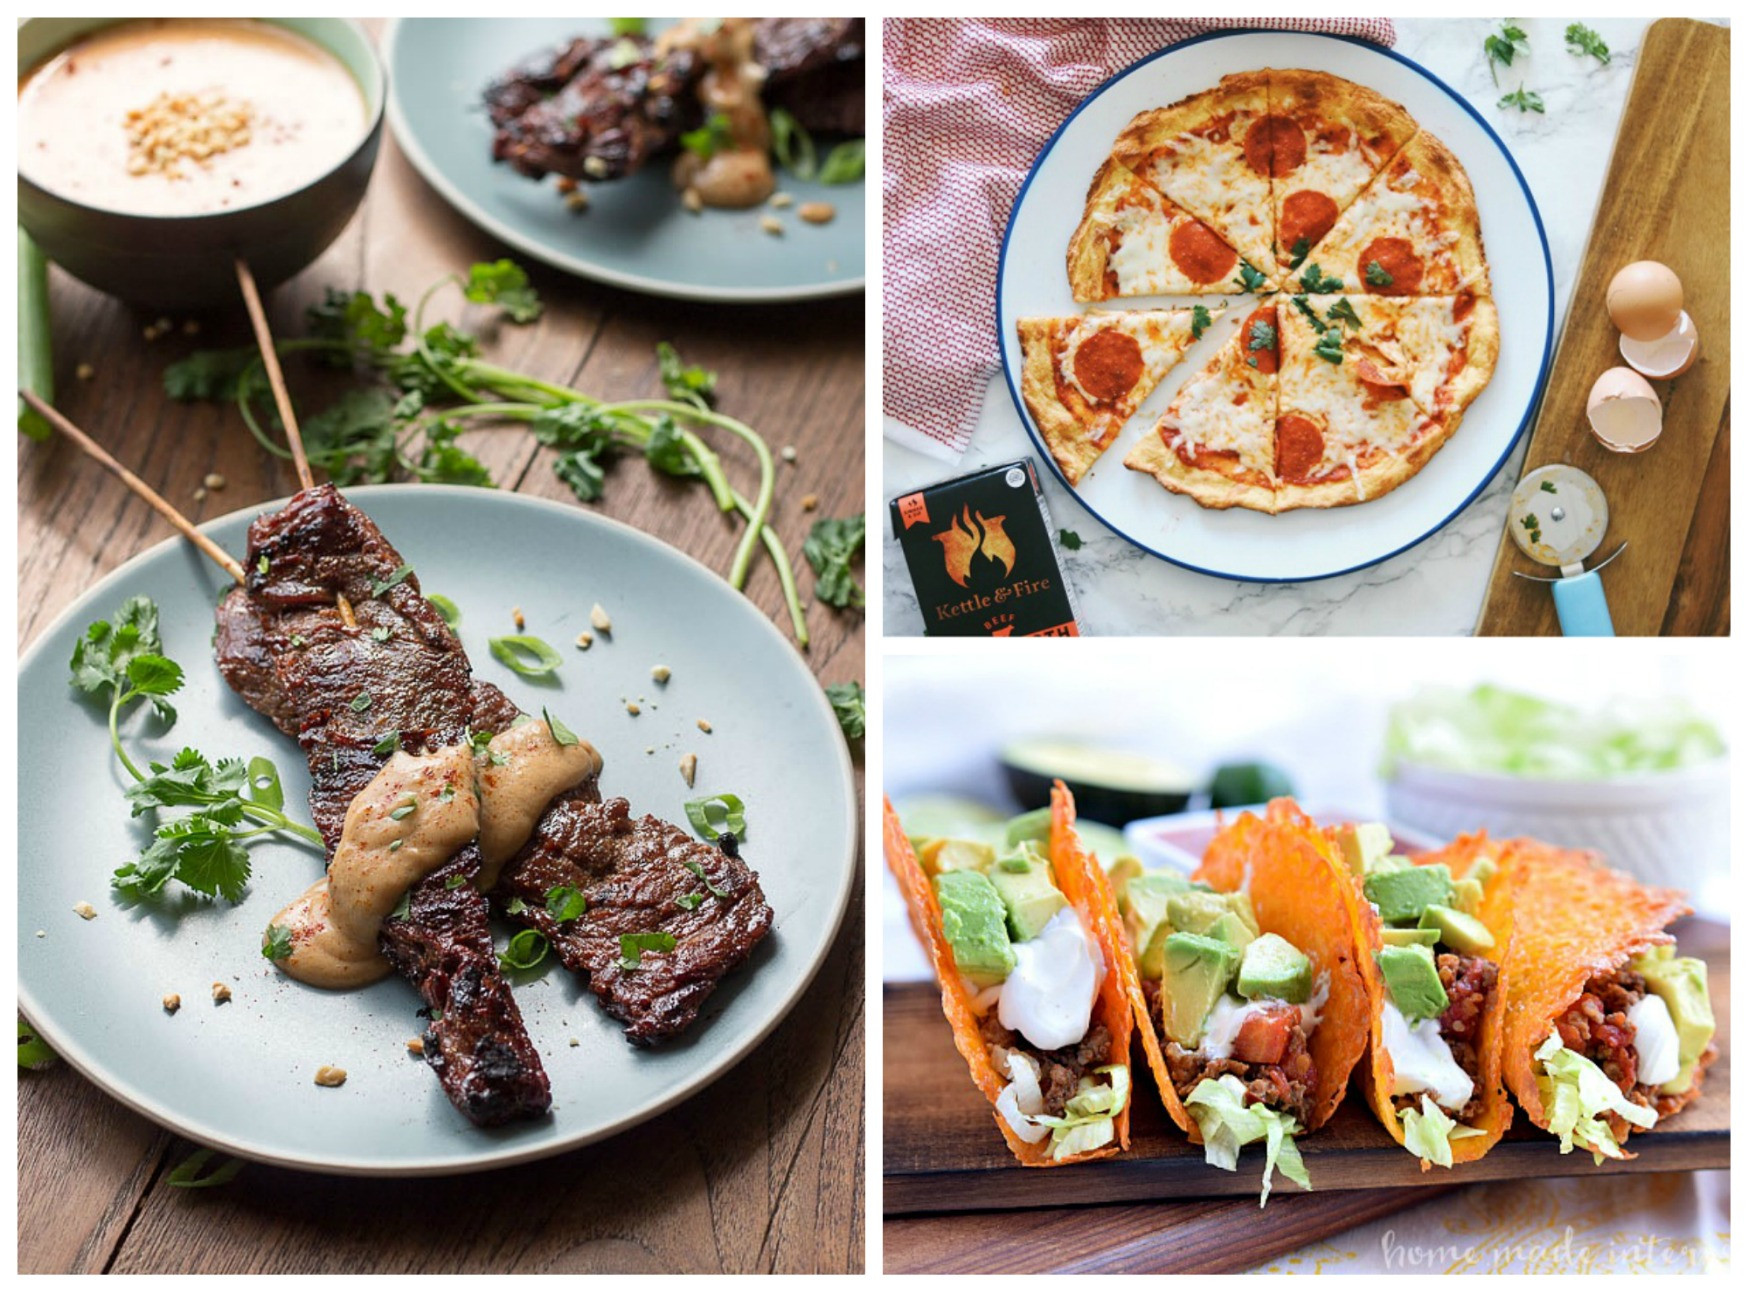 Easy Keto Dinner Recipes  15 Easy Keto Dinner Recipes That ll Turn You into a Fat